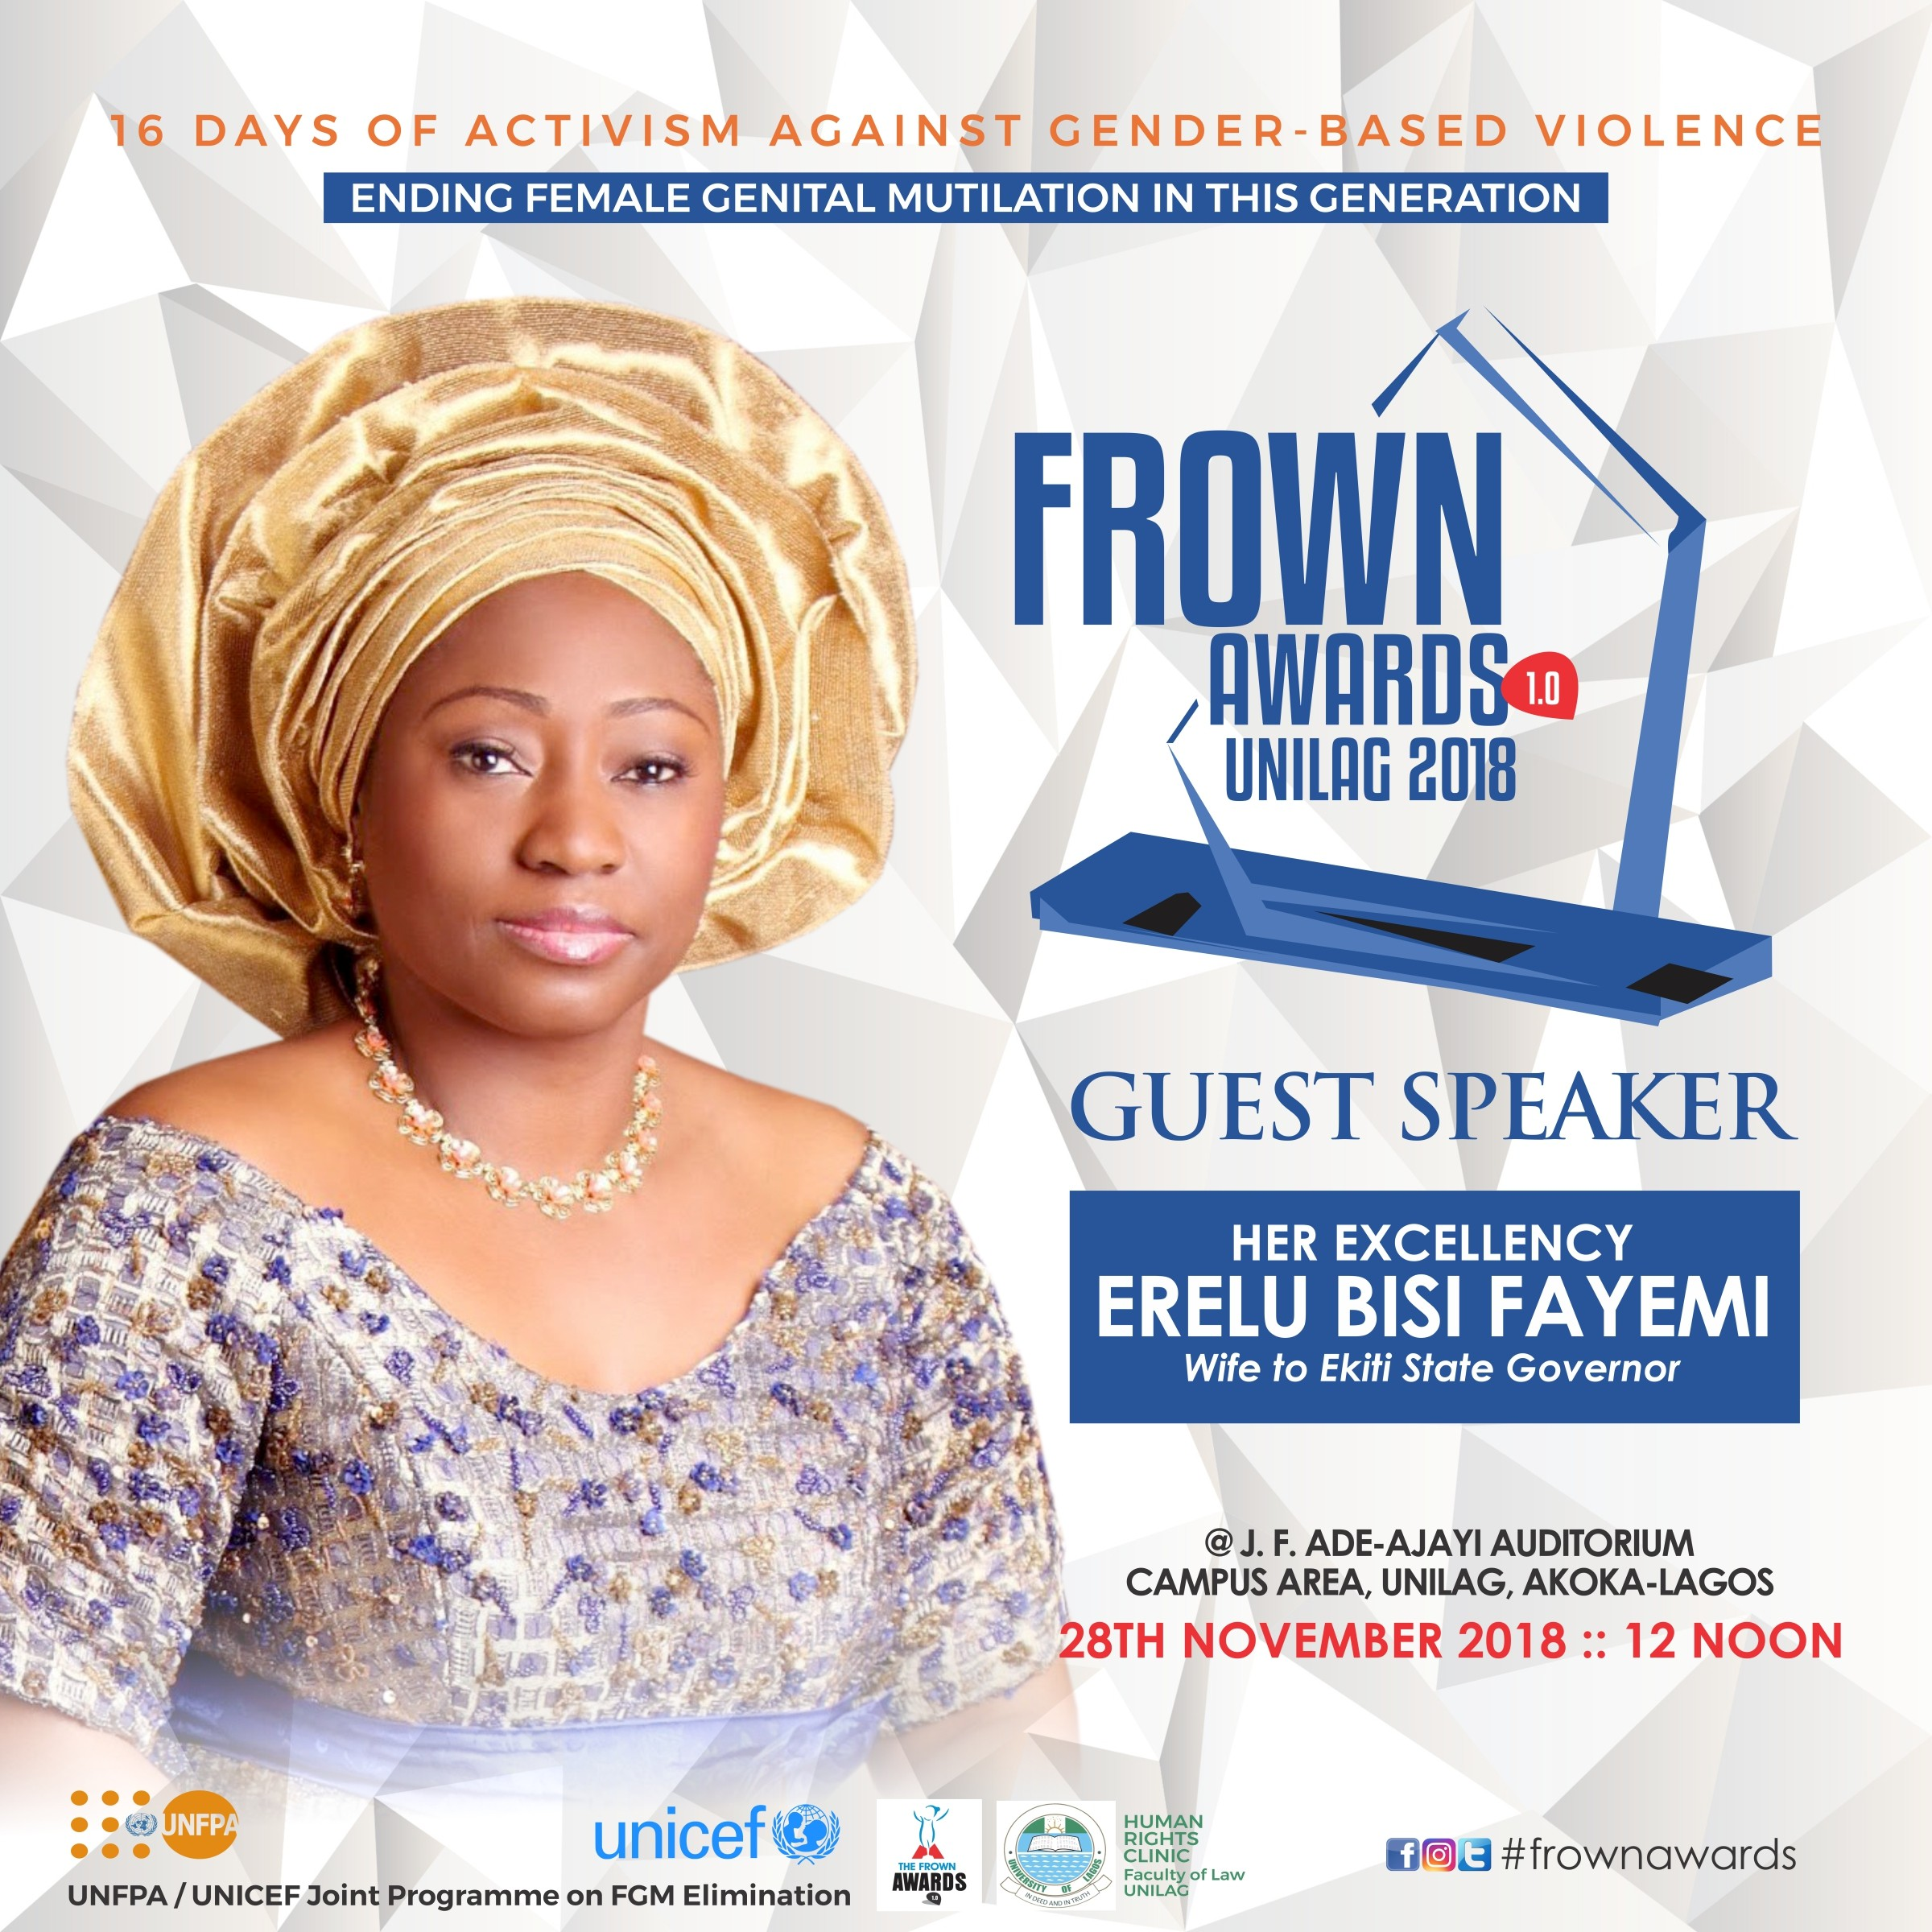 UNICEF Frown Awards: Human Rights Clinic (Faculty of Law, UNILAG) hosts the maiden edition